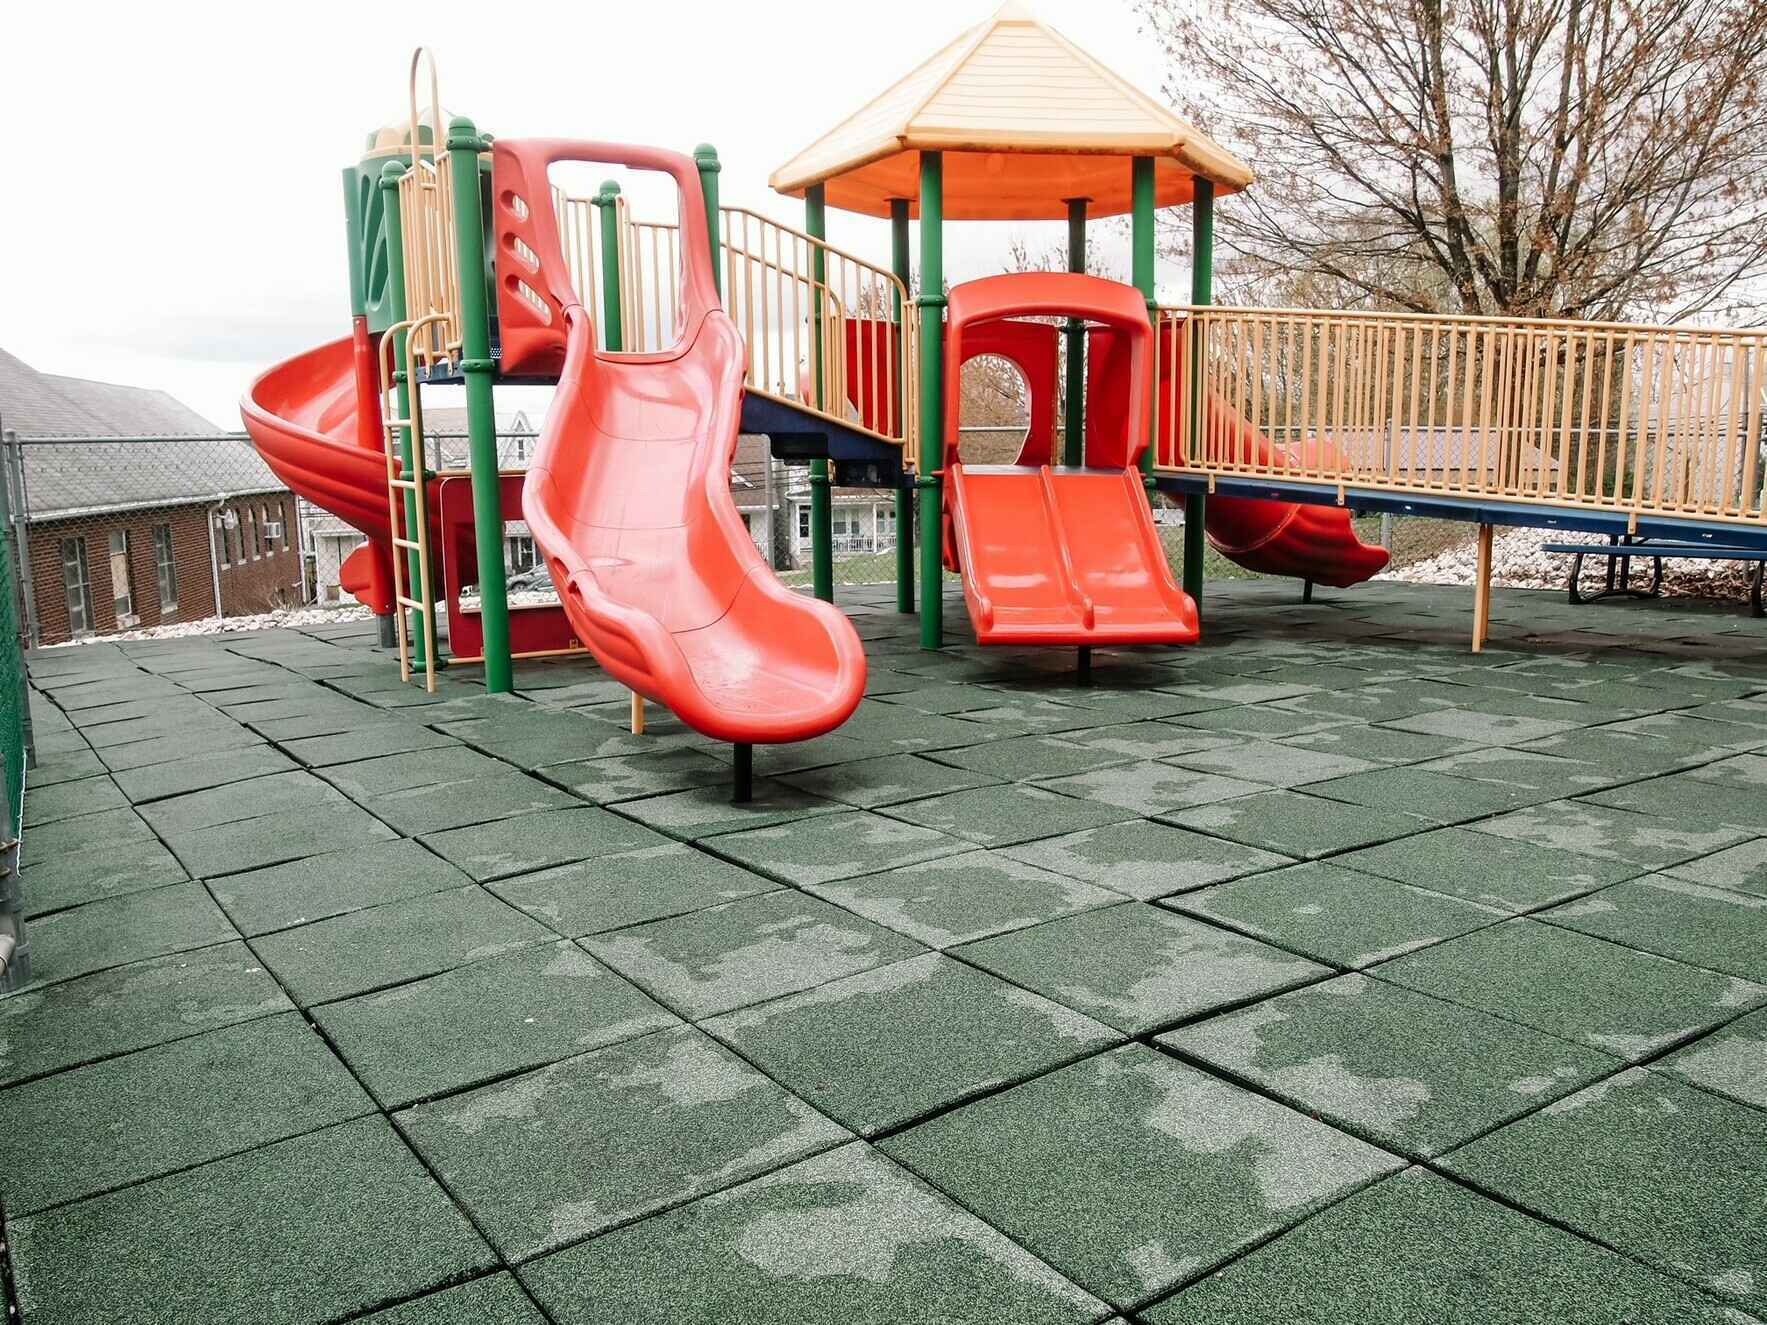 Give today to help revitalize our school playground! image